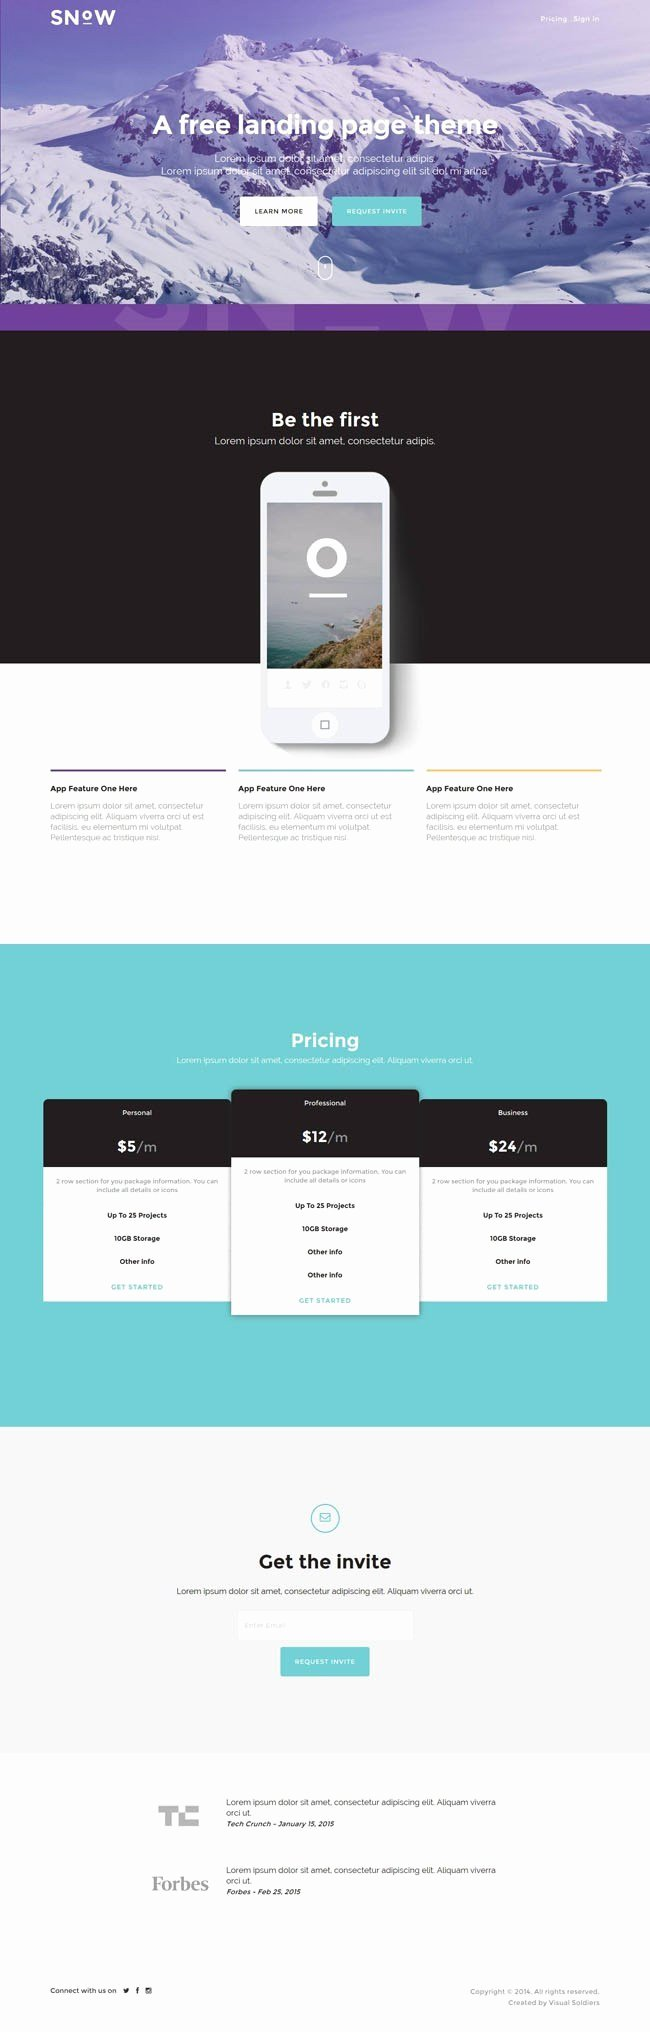 Bootstrap Mobile App Template New Snow Free Bootstrap Mobile App Landing Page Template